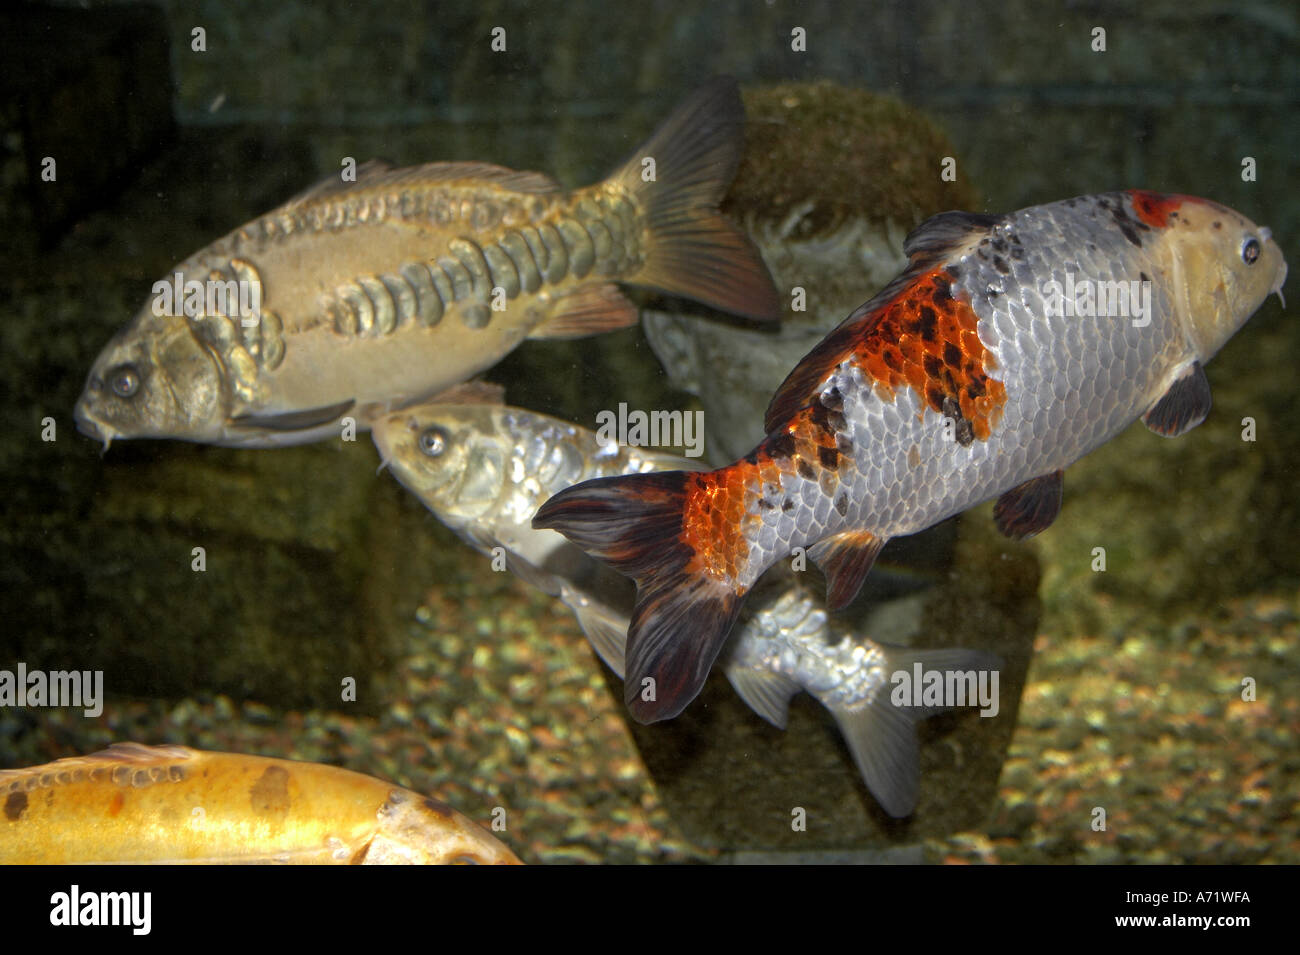 Koi carp fish swimming in london aquarium london se1 stock for Small koi carp